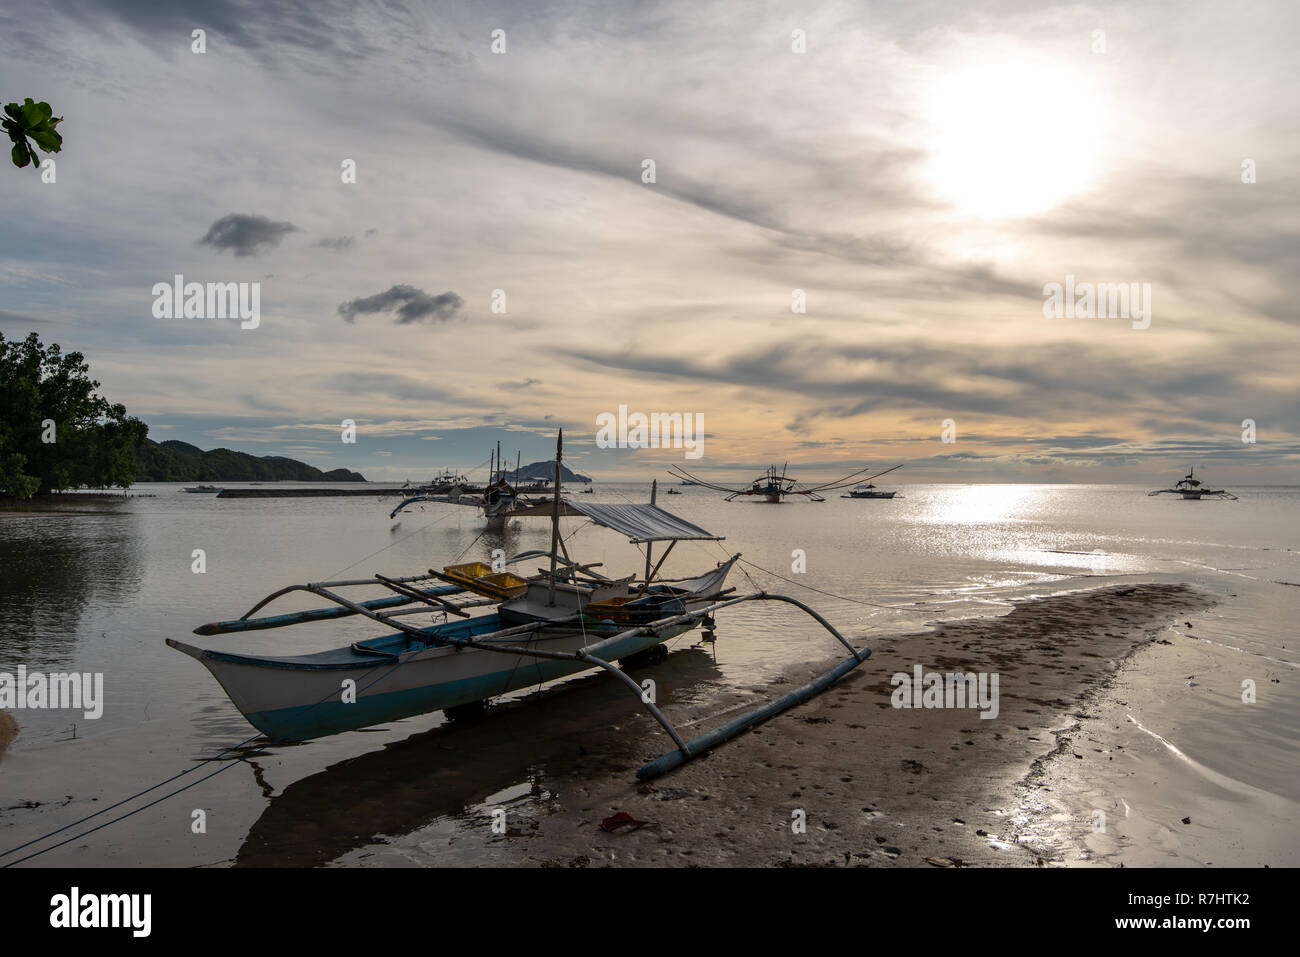 Boat On The Beach In Coron Palawan Philippines Stock